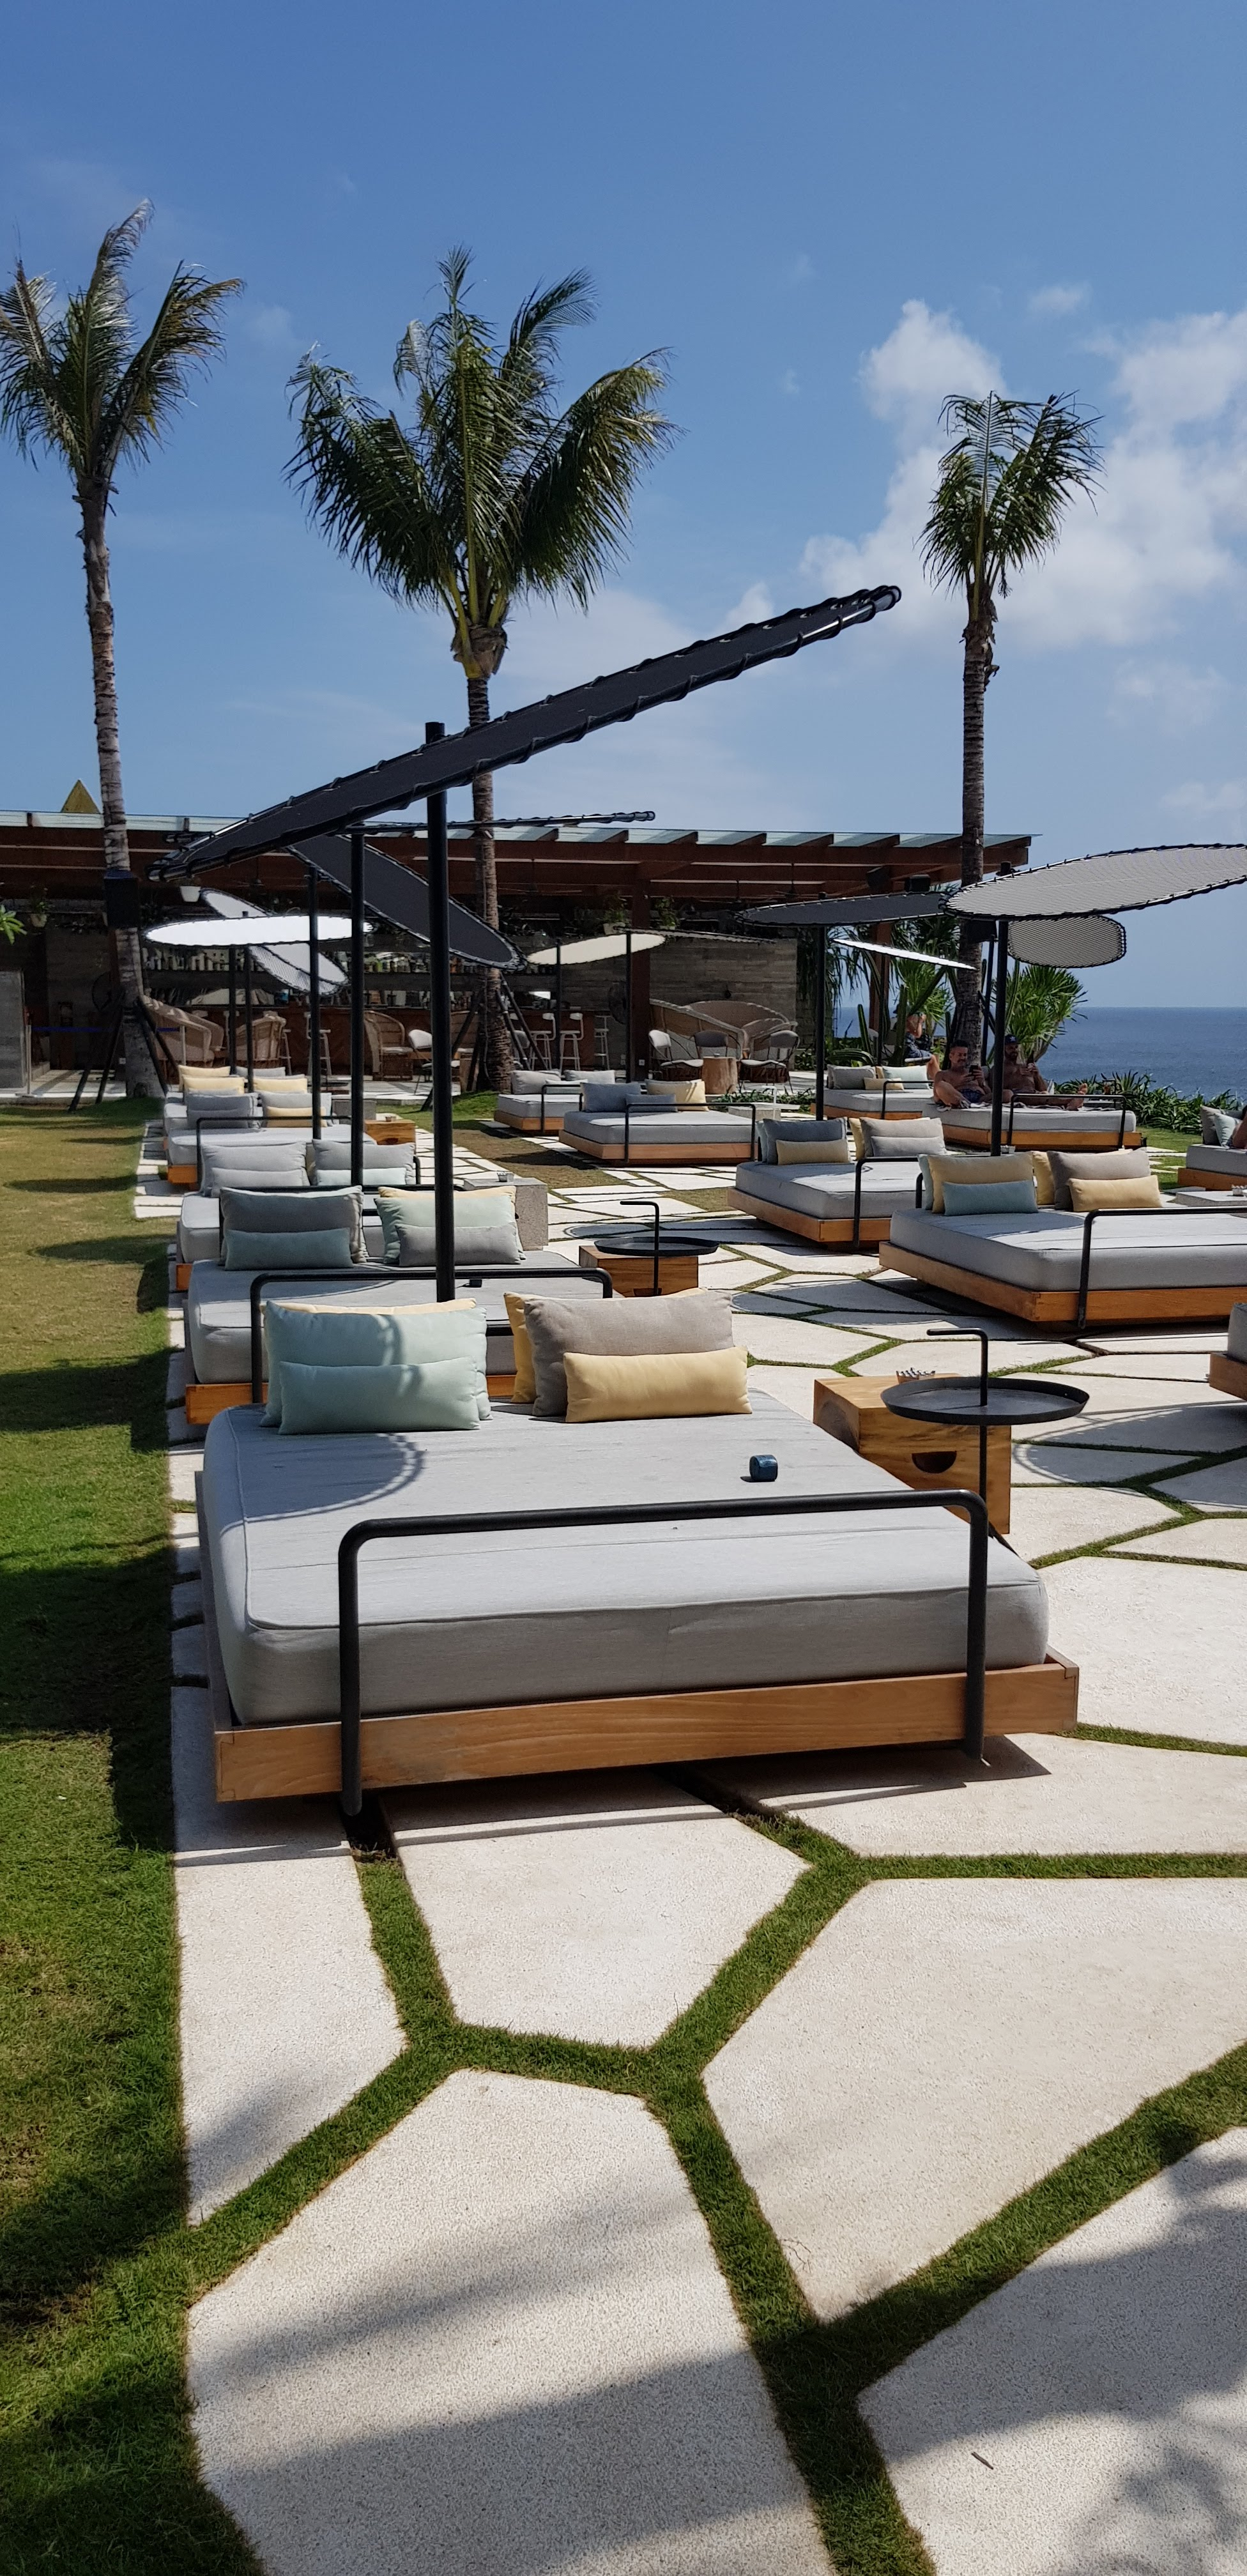 first timers guide to bali ulu cliffhouse travel blog vlogger sunbeds